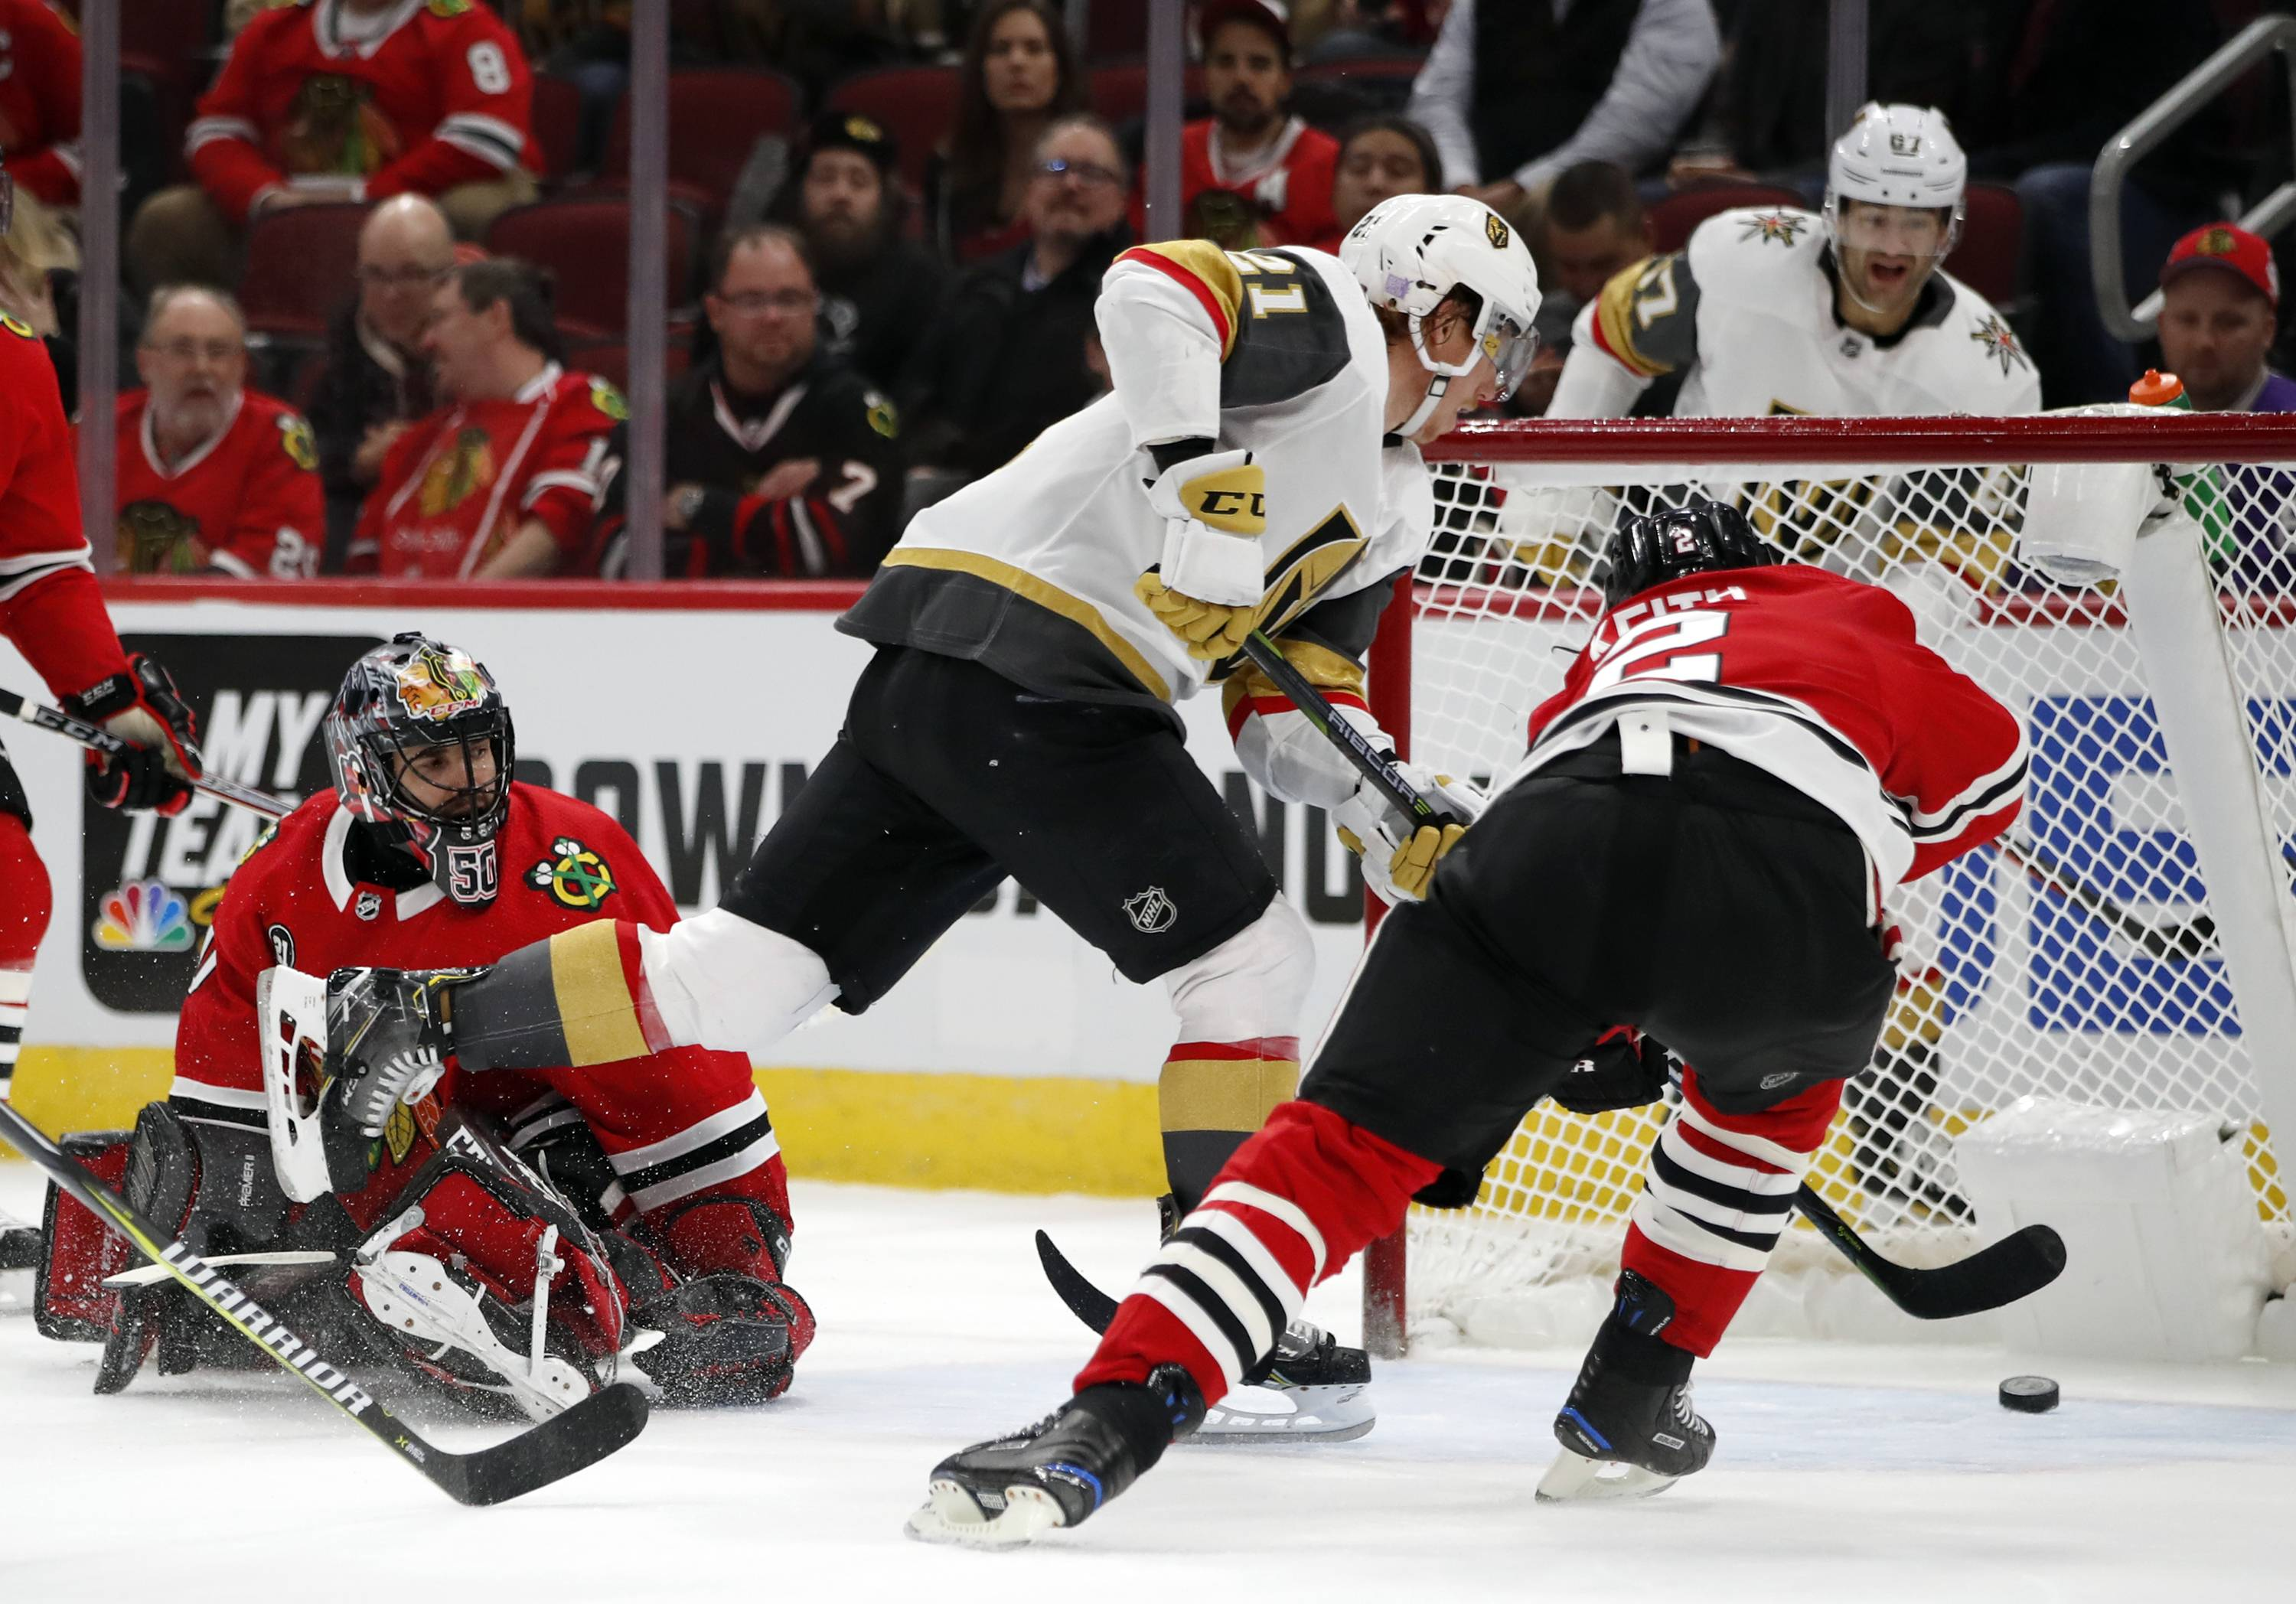 Vegas Golden Knights center Cody Eakin (21) scores a goal past Chicago Blackhawks goaltender Corey Crawford (50) and defenseman Duncan Keith (2) during the first period of an NHL hockey game Tuesday, Nov. 27, 2018, in Chicago.